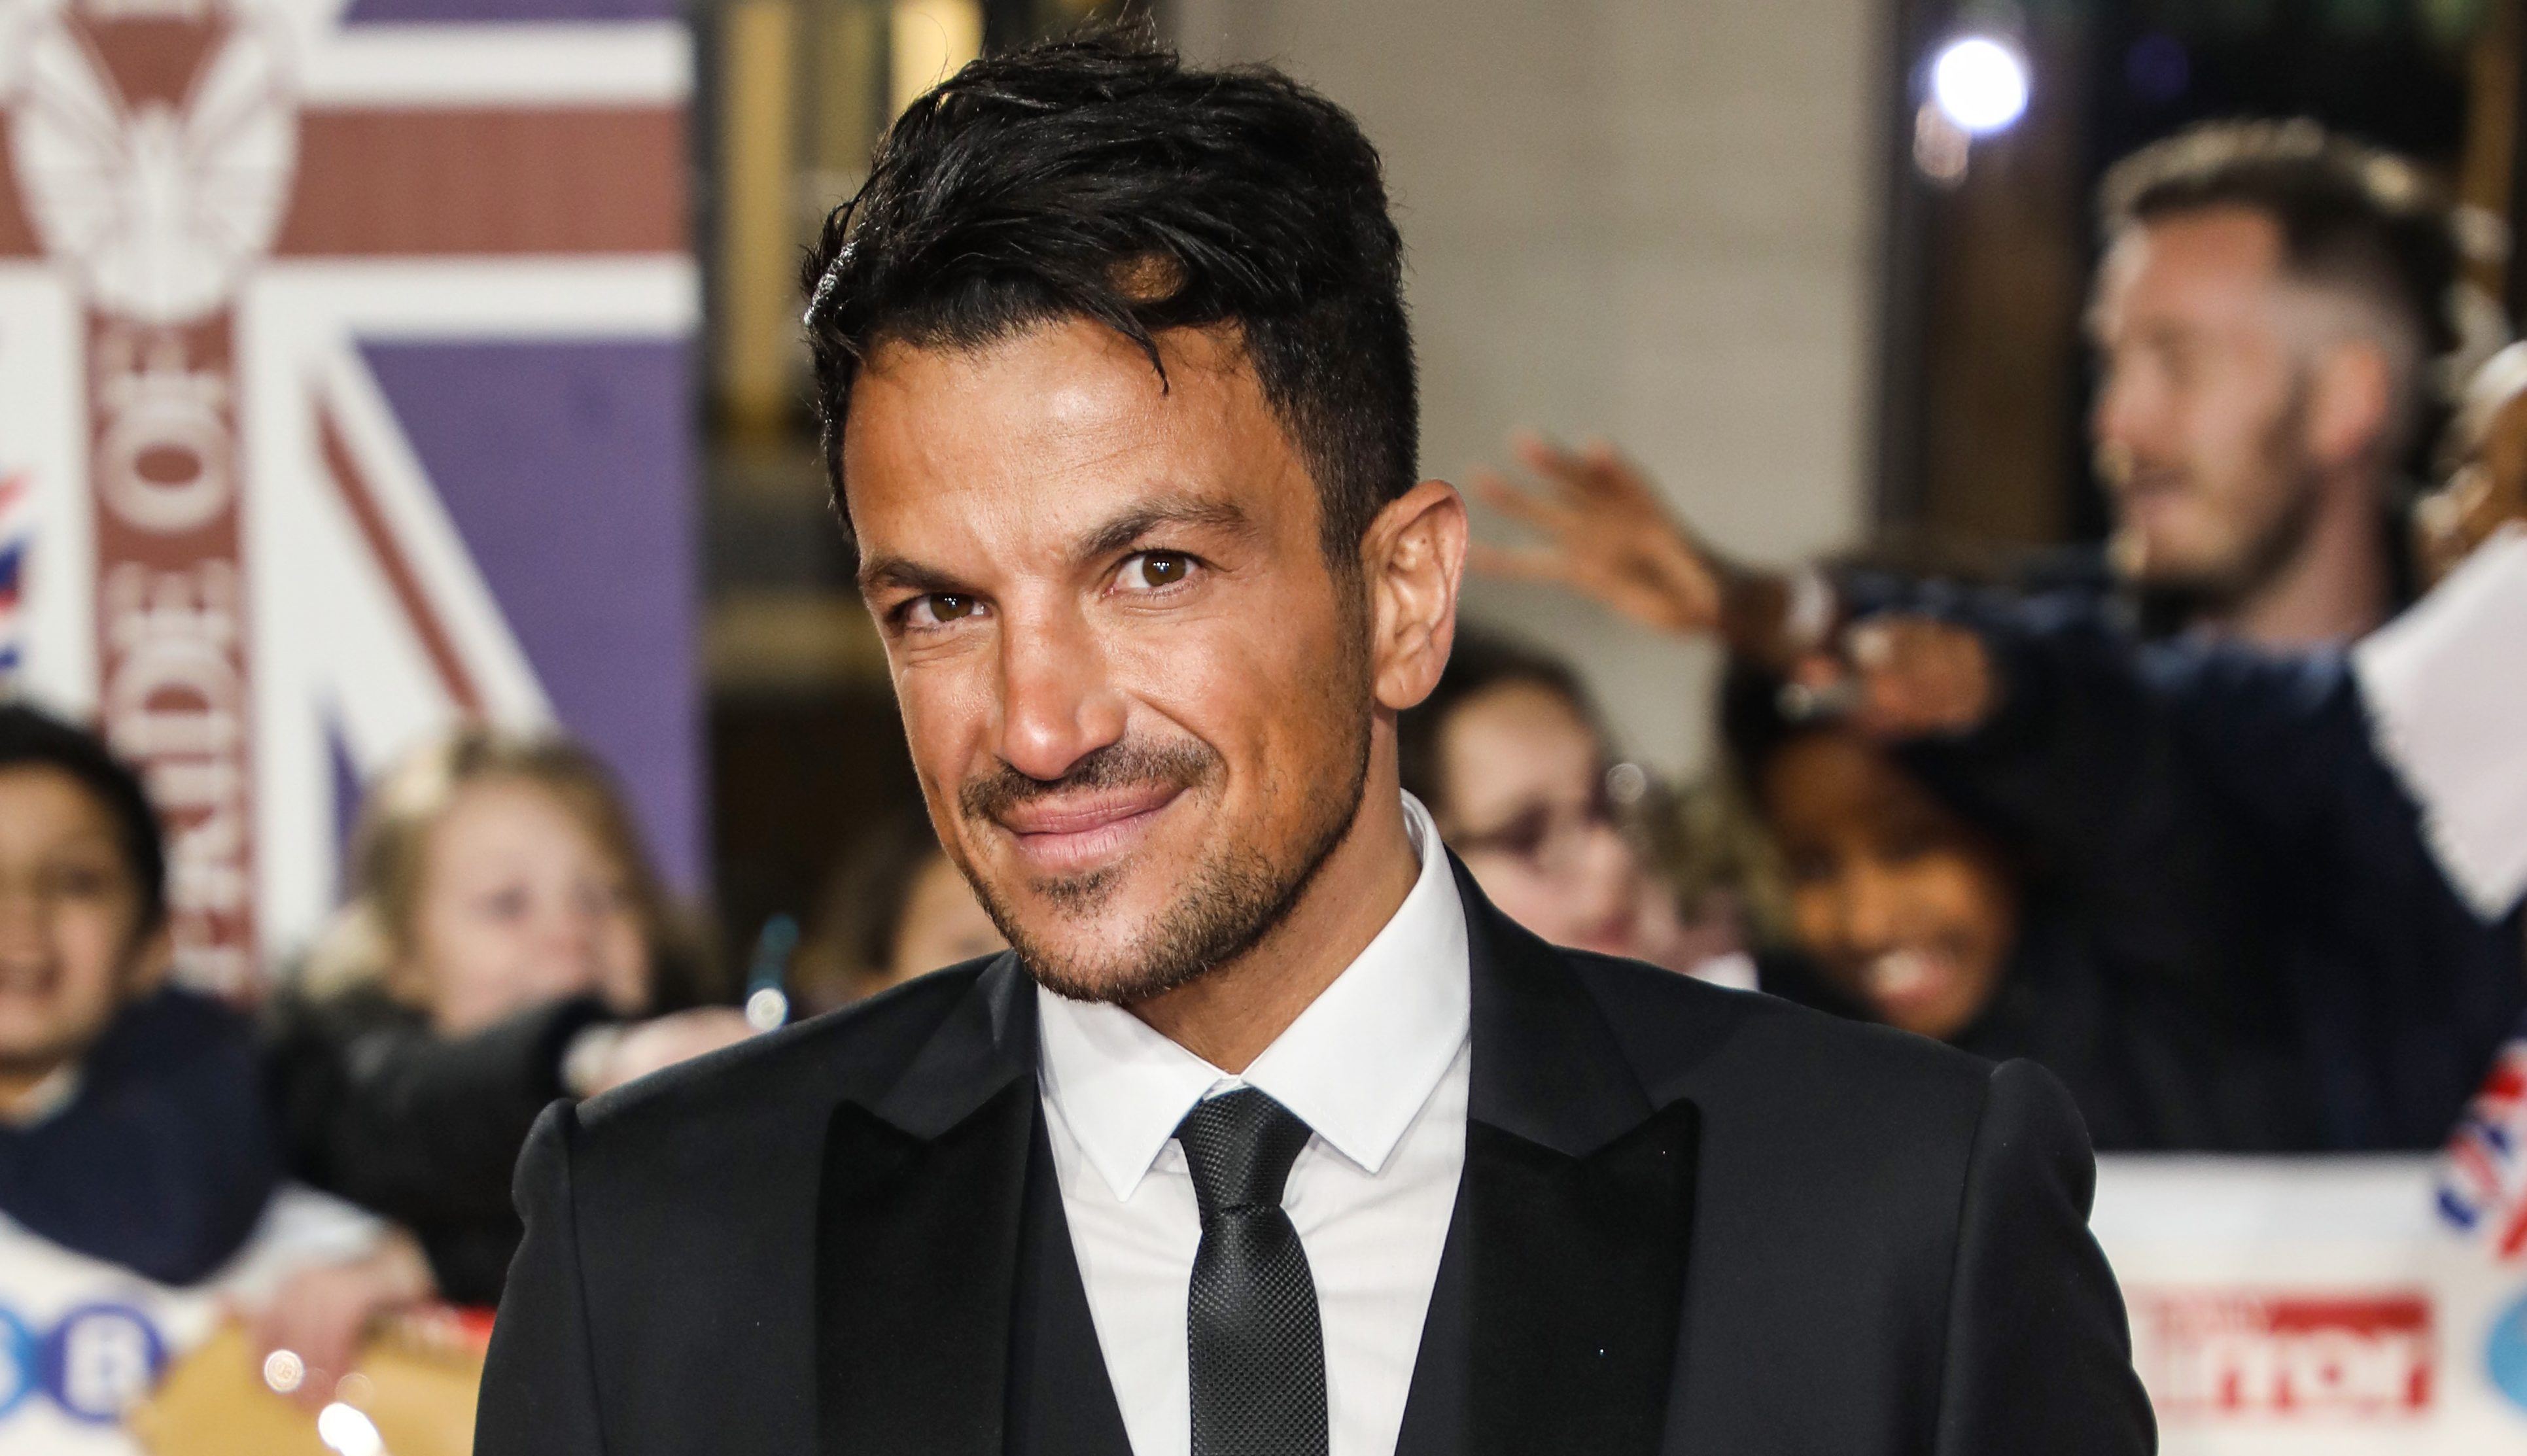 Peter Andre fires up the BBQ and admits defeat in vegan challenge with Emily